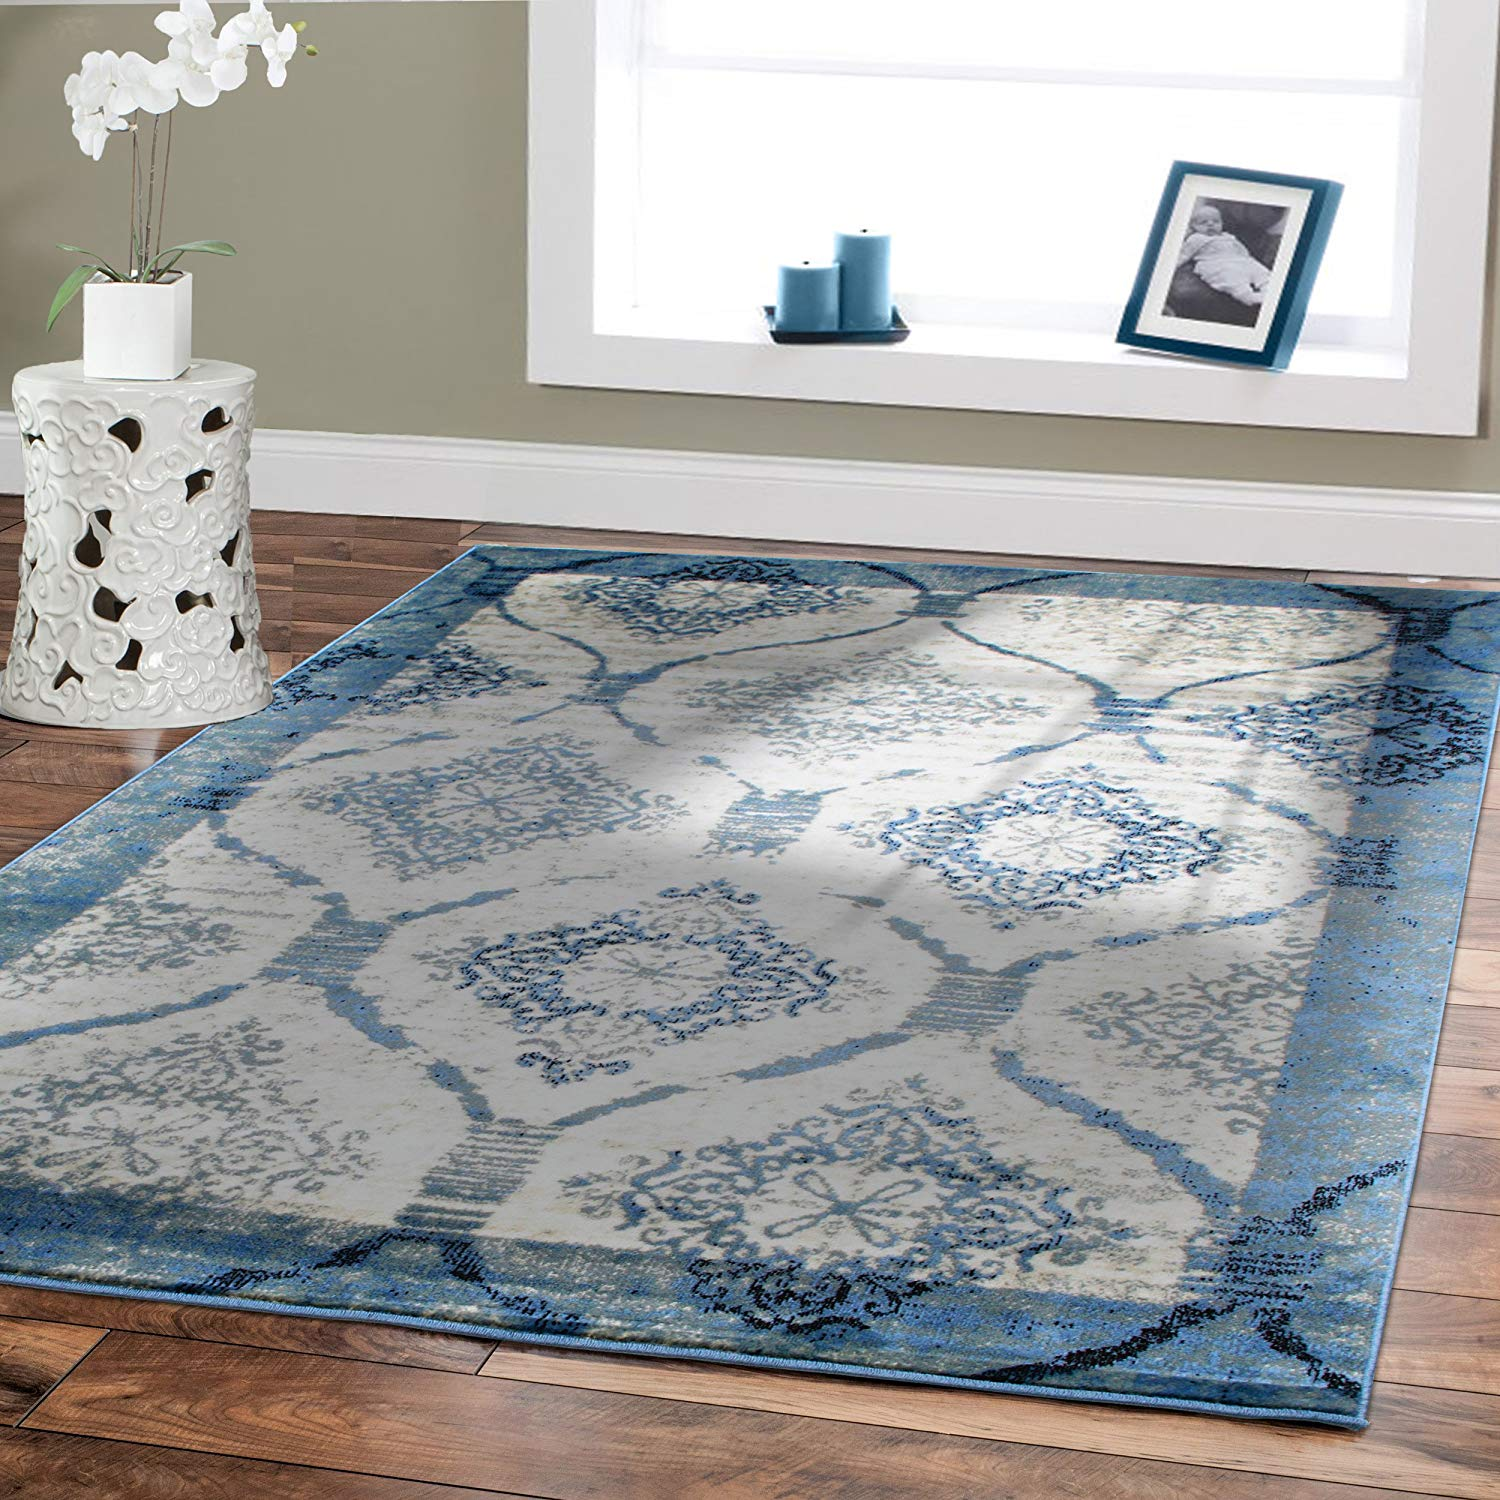 amazon.com: contemporary rugs for living room 5x8 blue area rug modern rugs AVGENOL